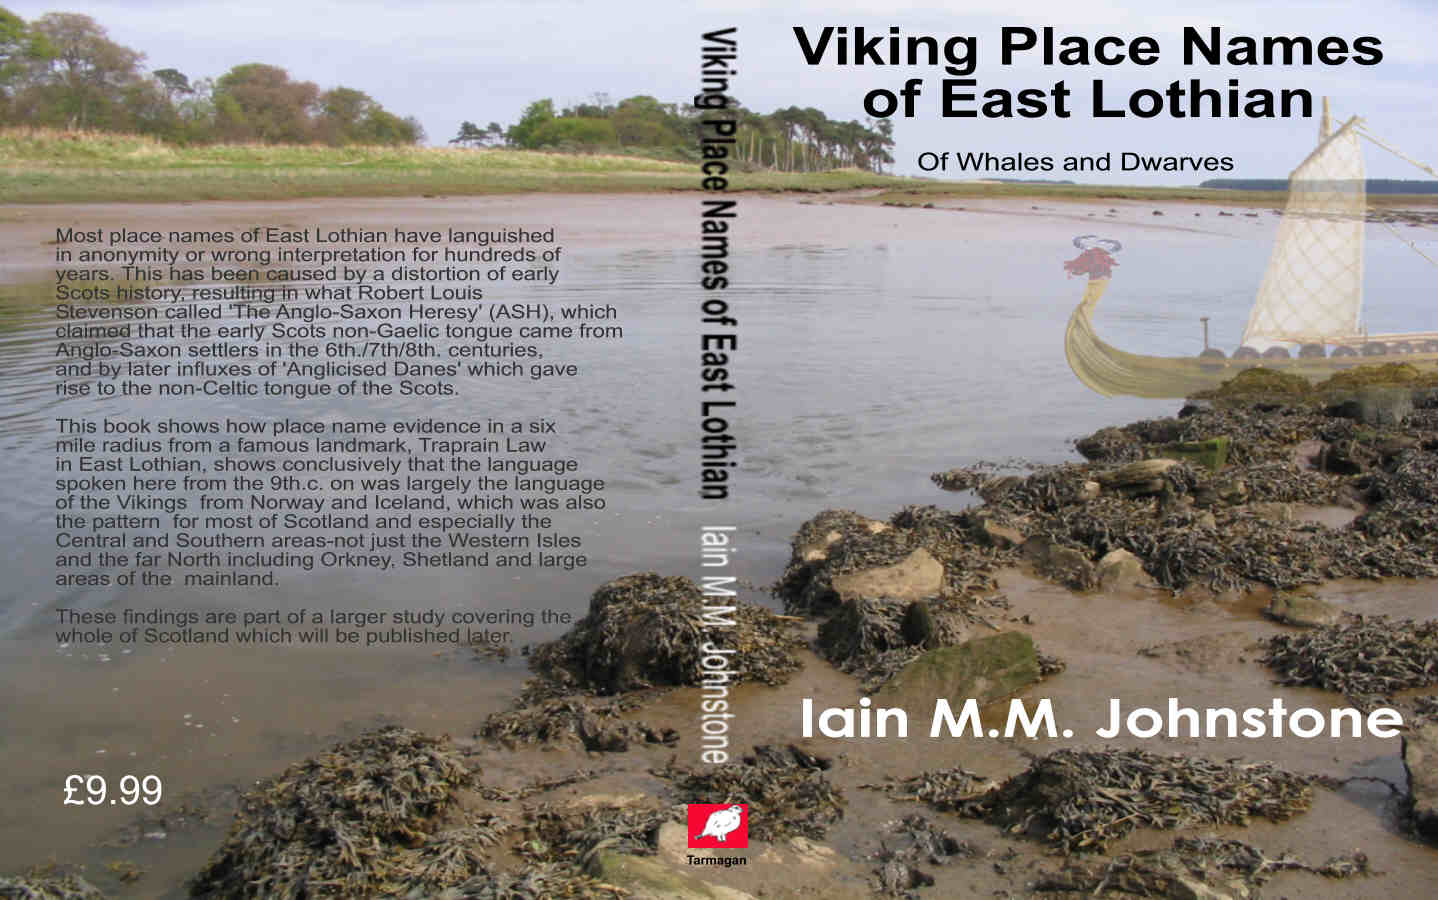 Viking Place Names of East Lothian